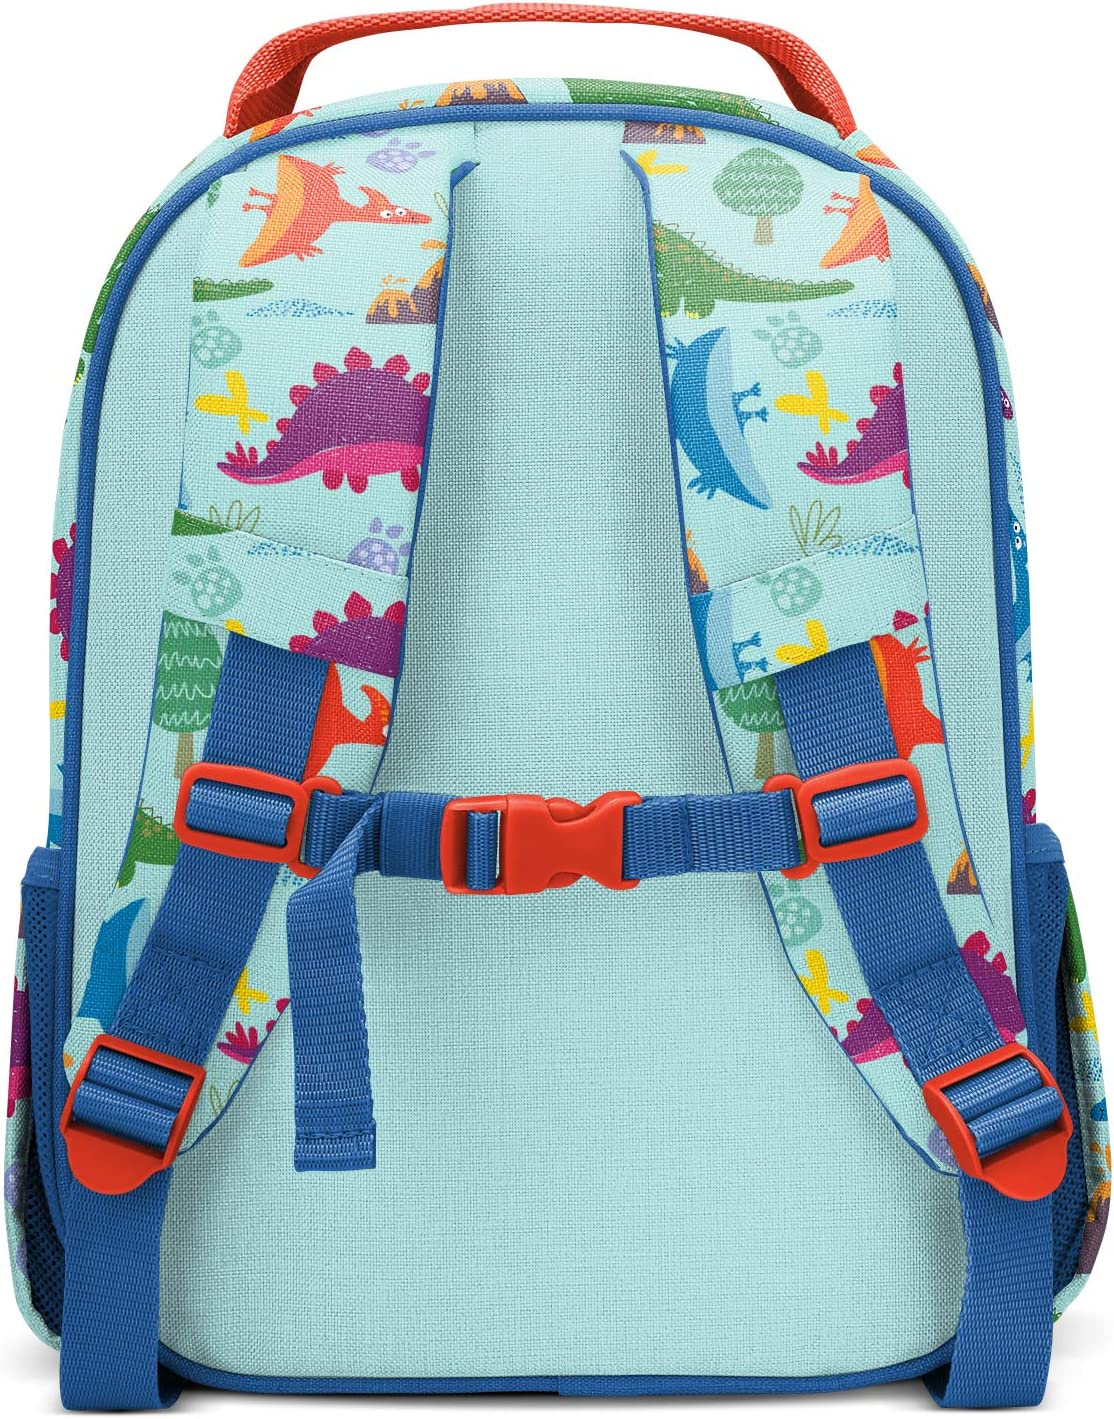 Mickey and Minnie Dreams Simple Modern Kids Fletcher Backpack 7 Liter